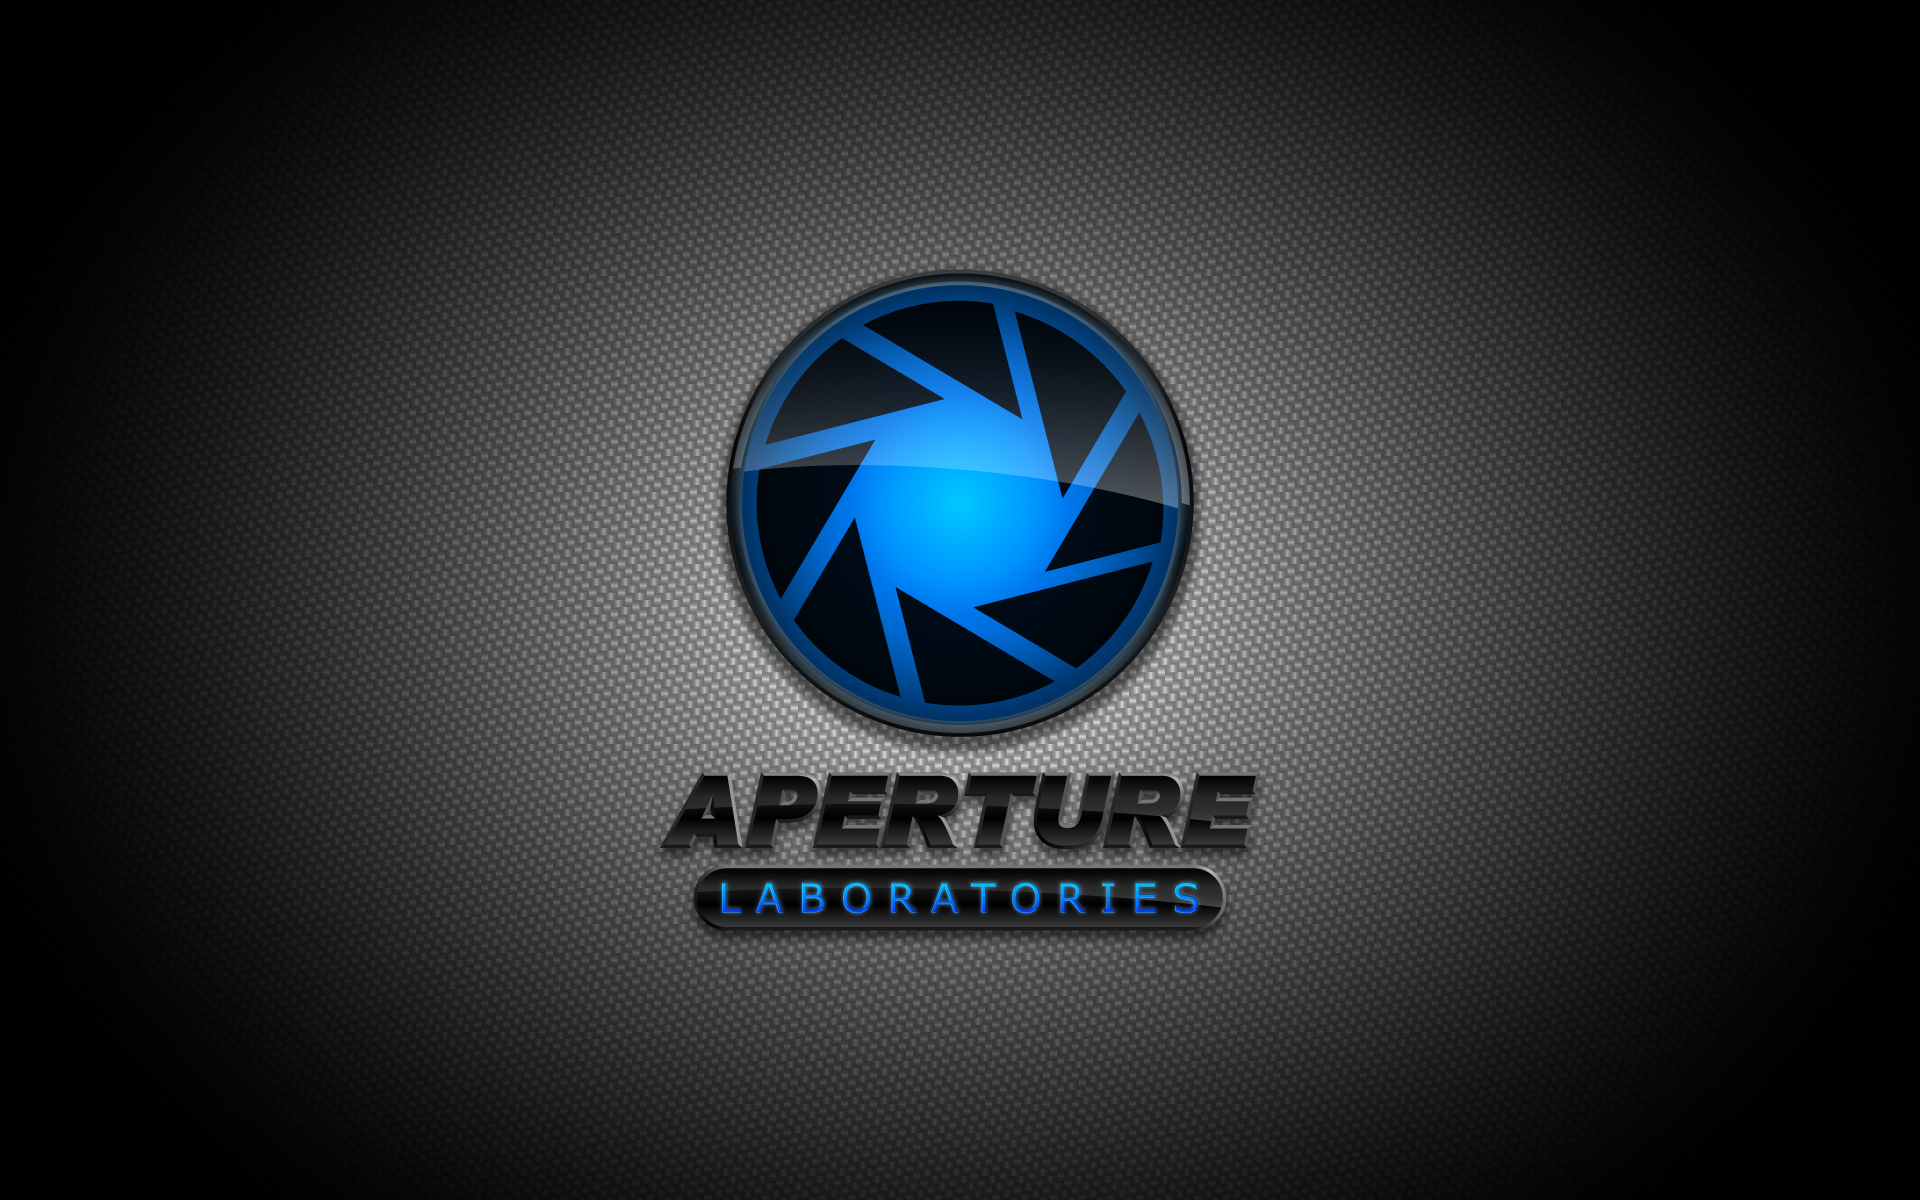 Aperture Laboratories wallpaper 59995 1920x1200